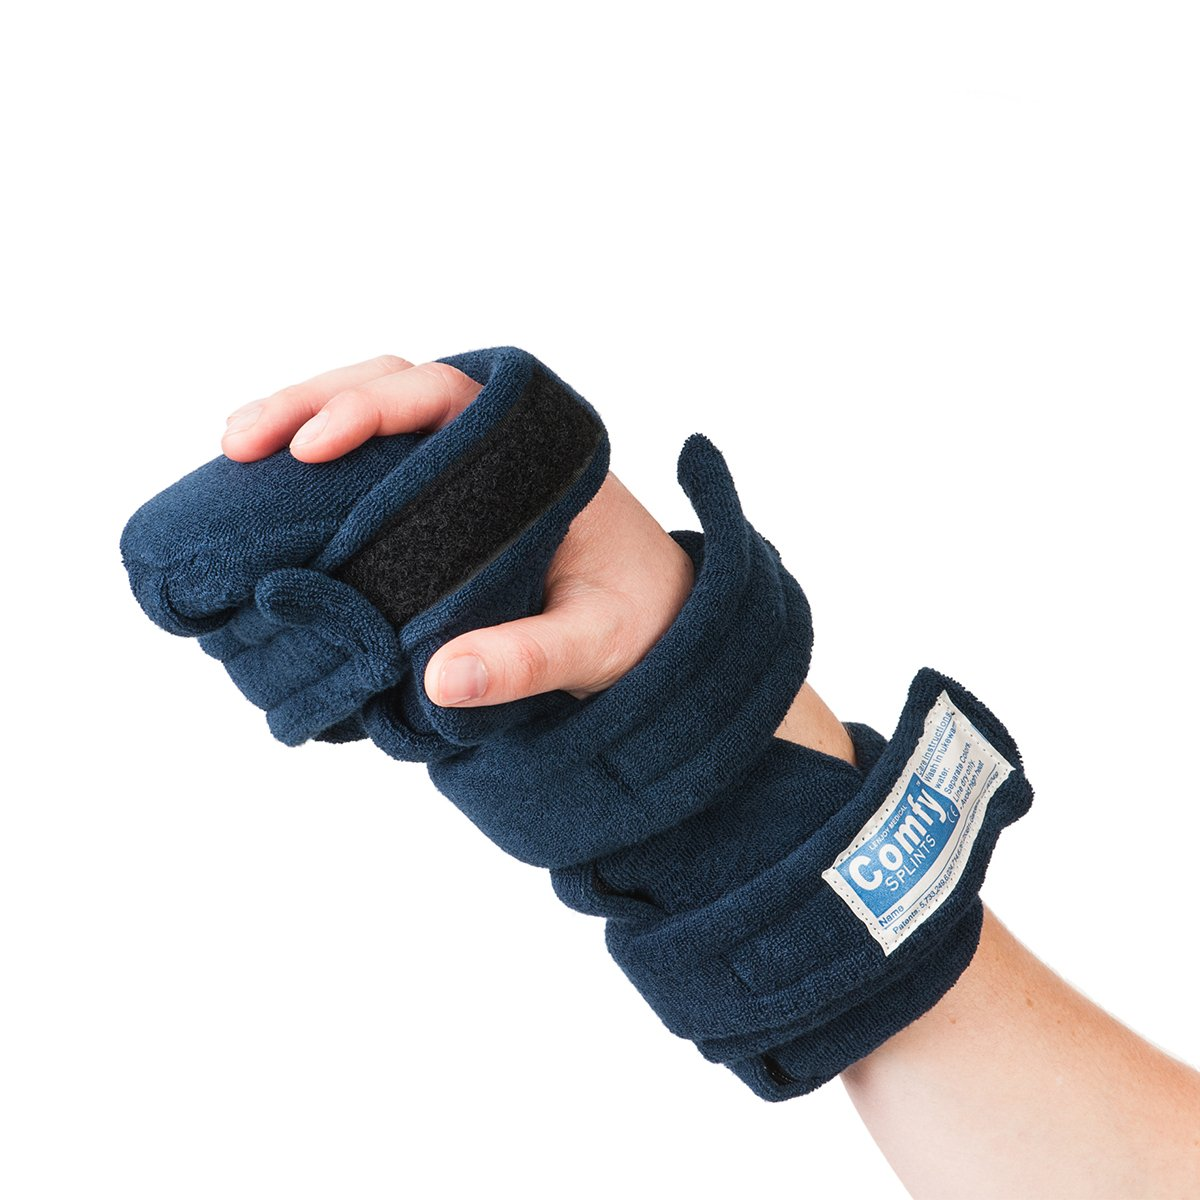 Comfy Splints Comfy Hand/Thumb Orthosis, Adult Small with One Cover